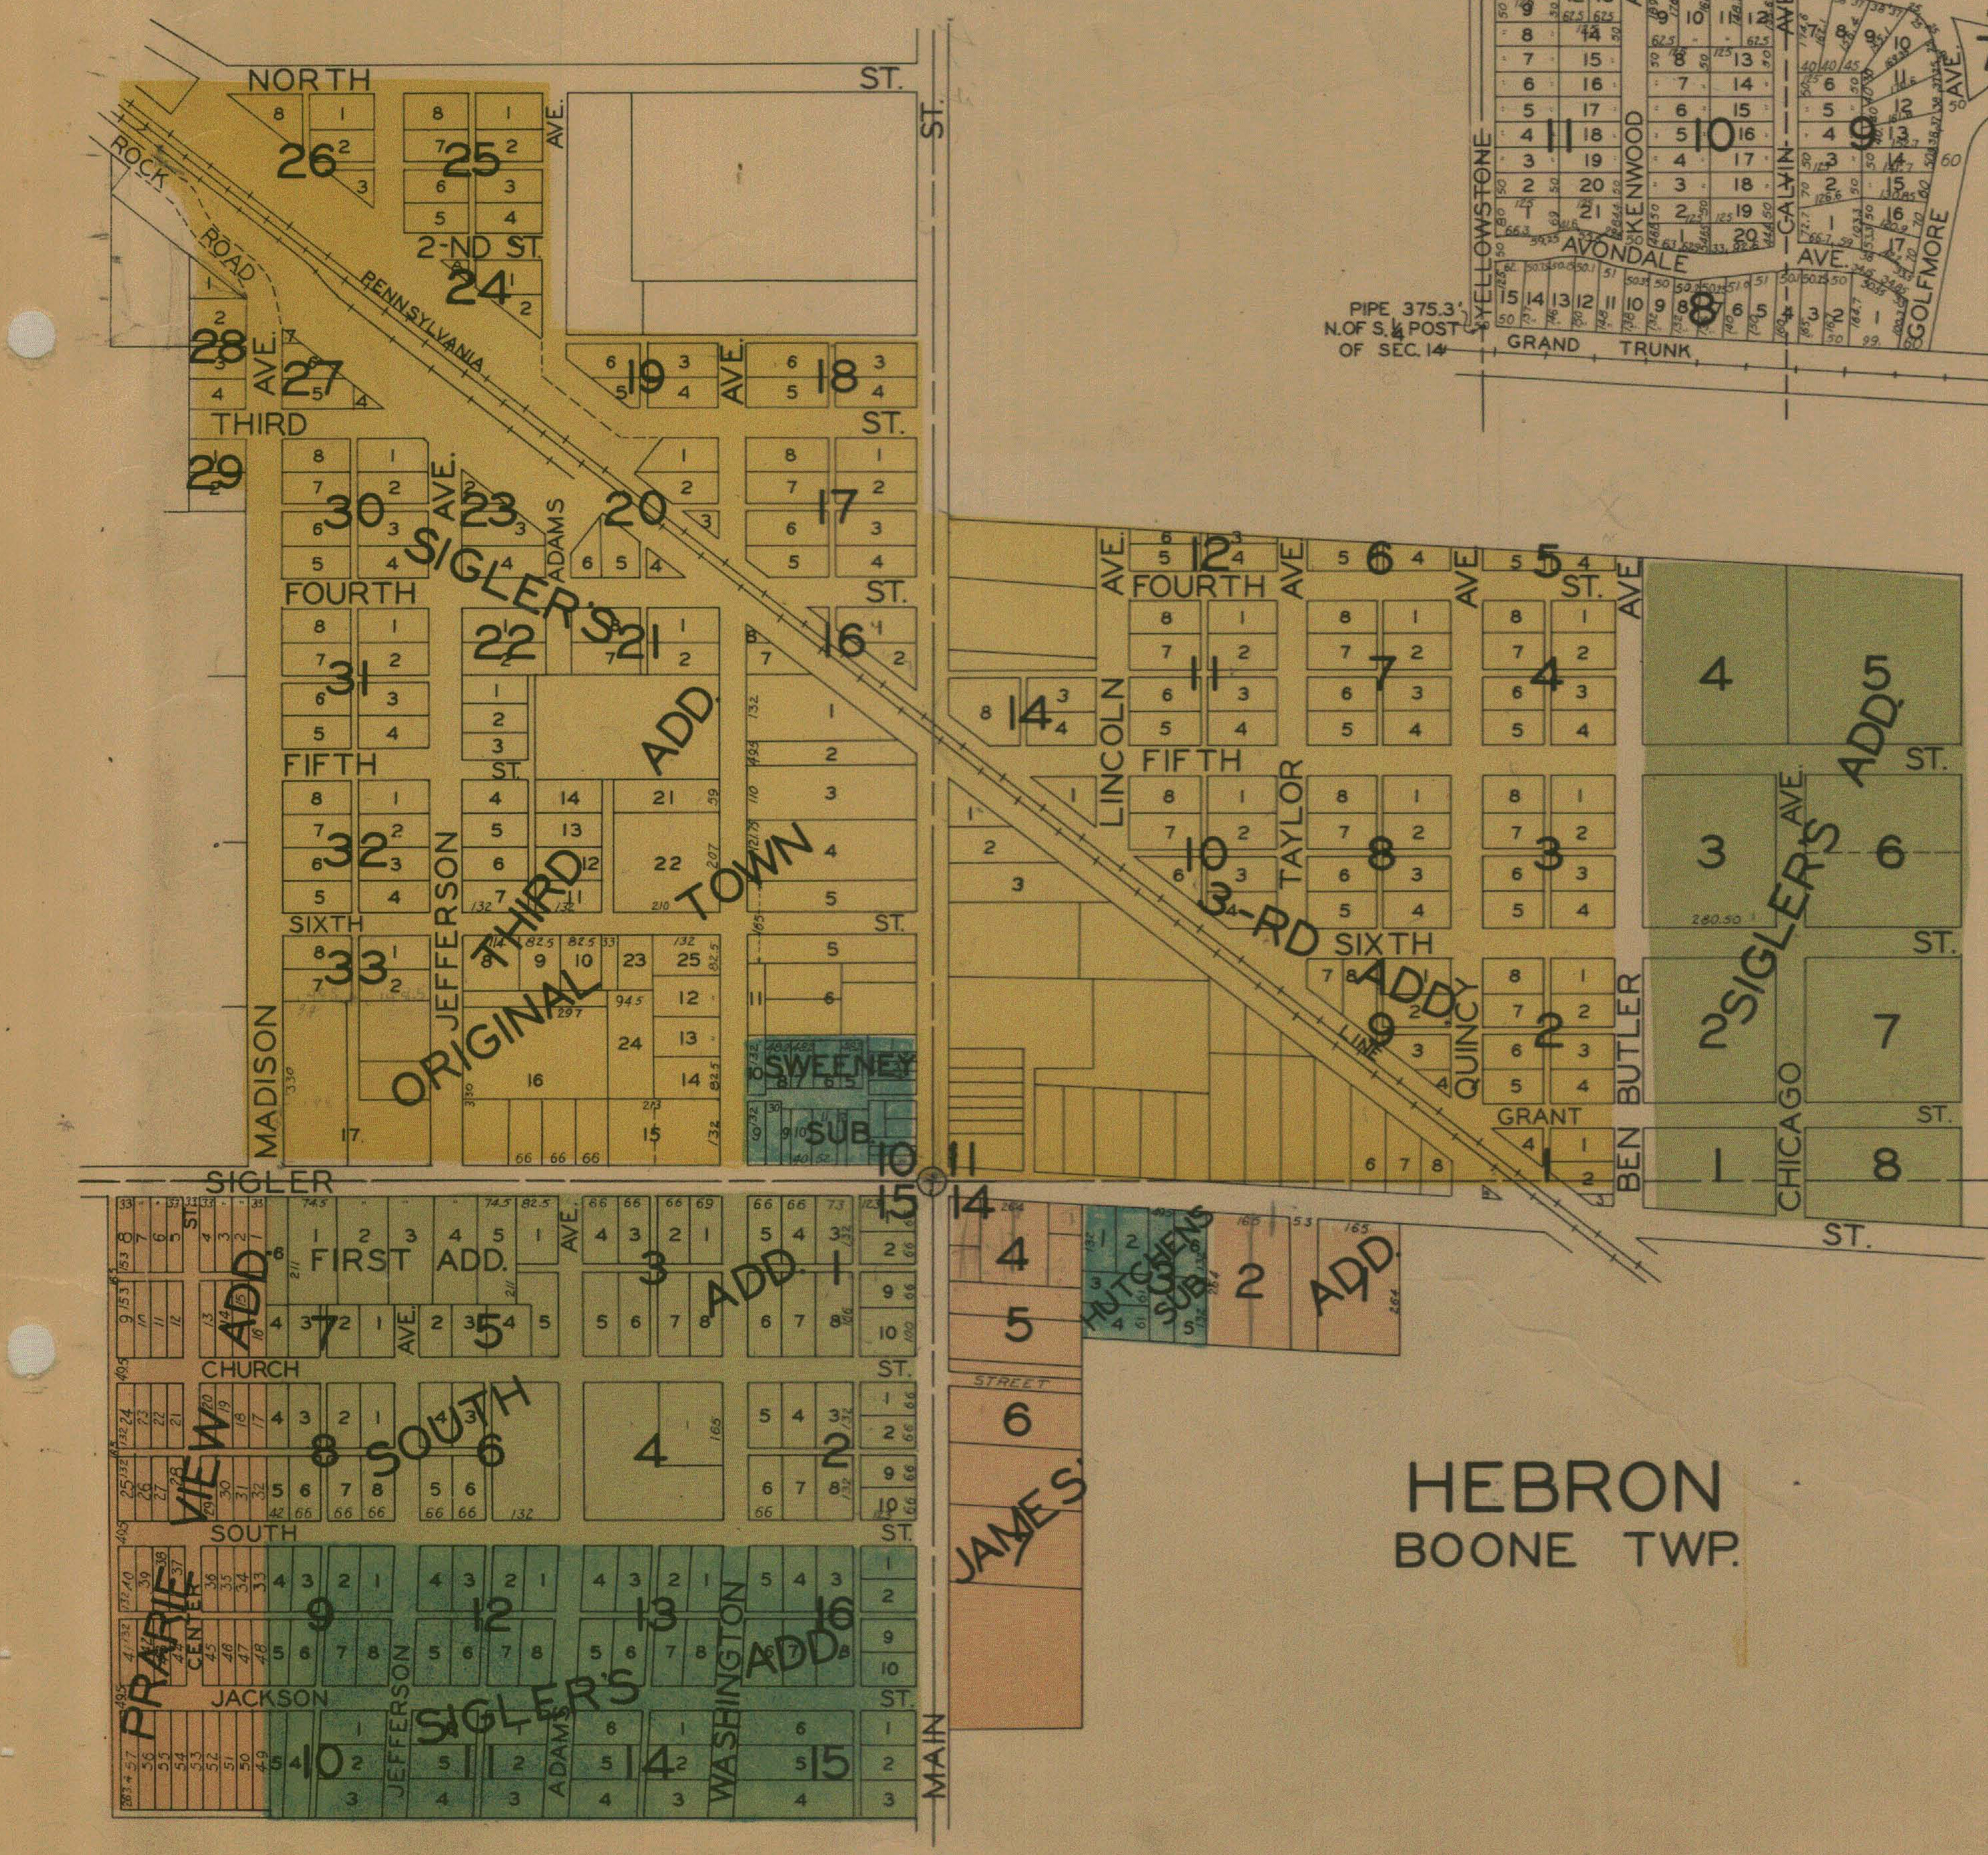 Hebron Indiana Map.Porter County Indiana Genweb City And Village Plat Maps